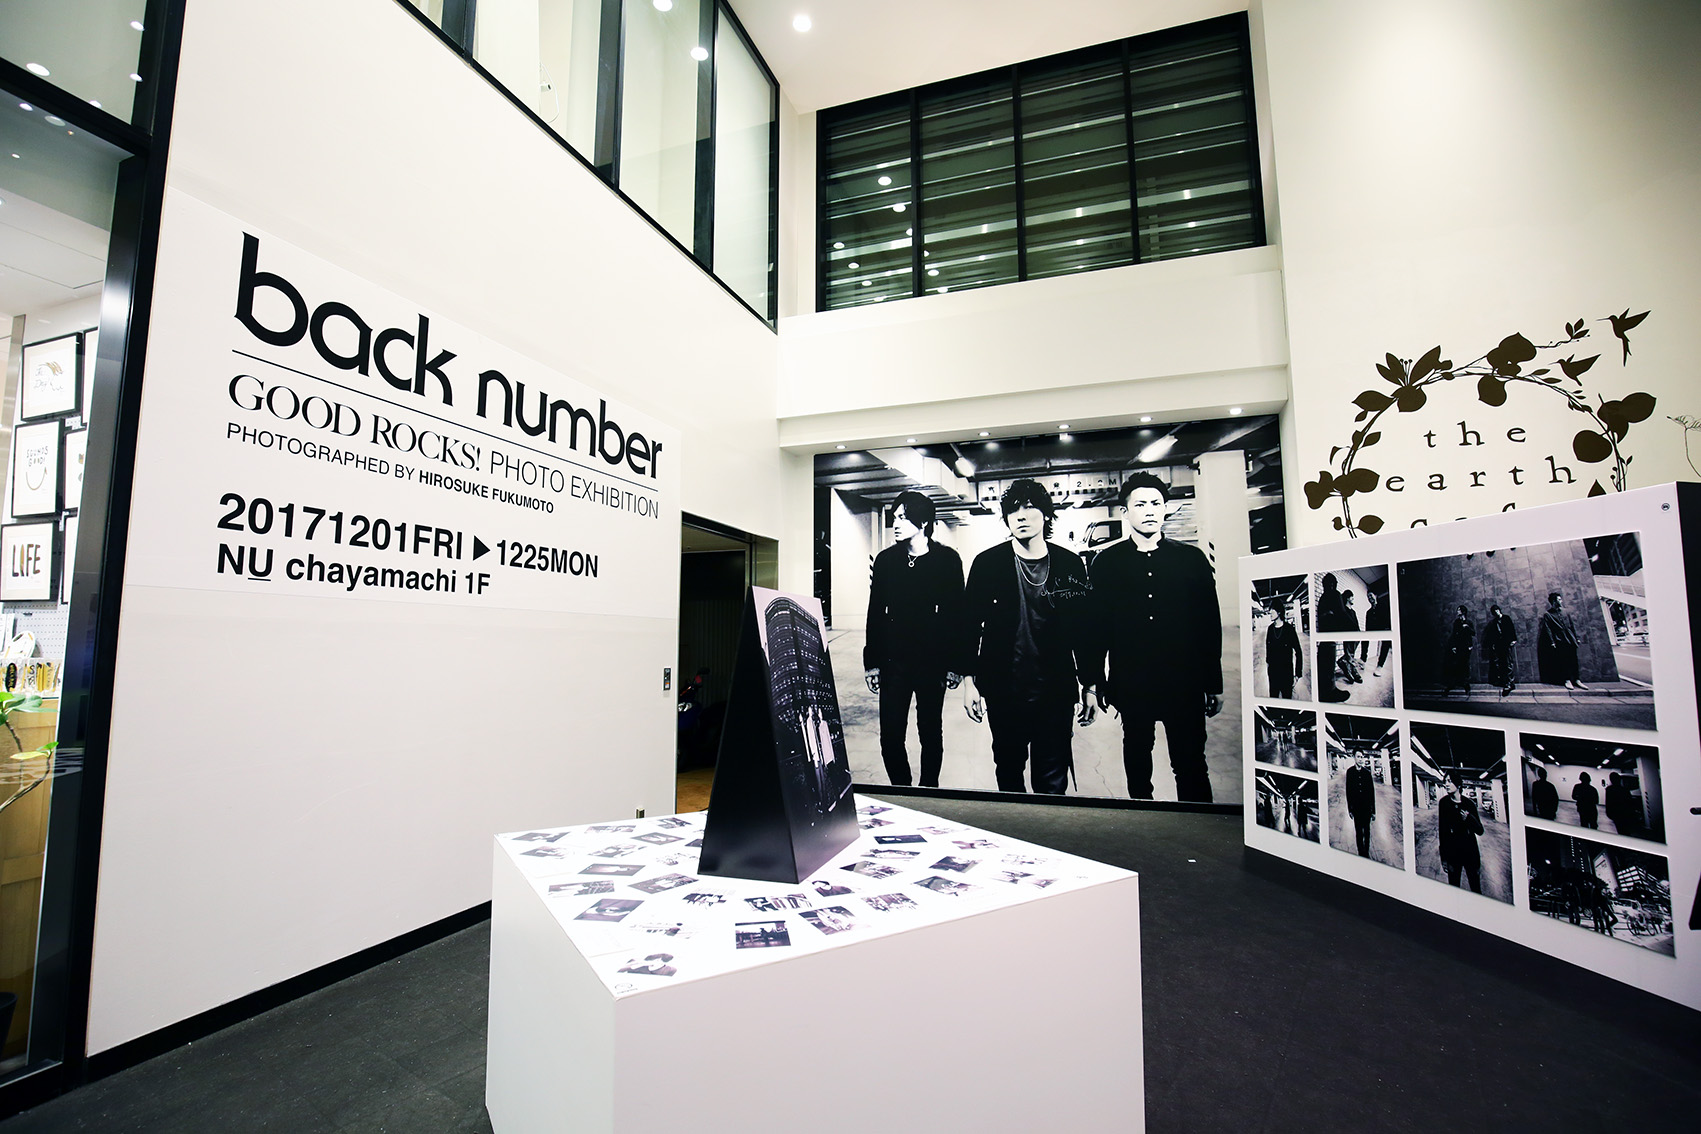 【大阪】GOOD ROCKS! back number PHOTO EXHIBITION PHOTOGRAPHED BY HIROSUKE FUKUMOTO